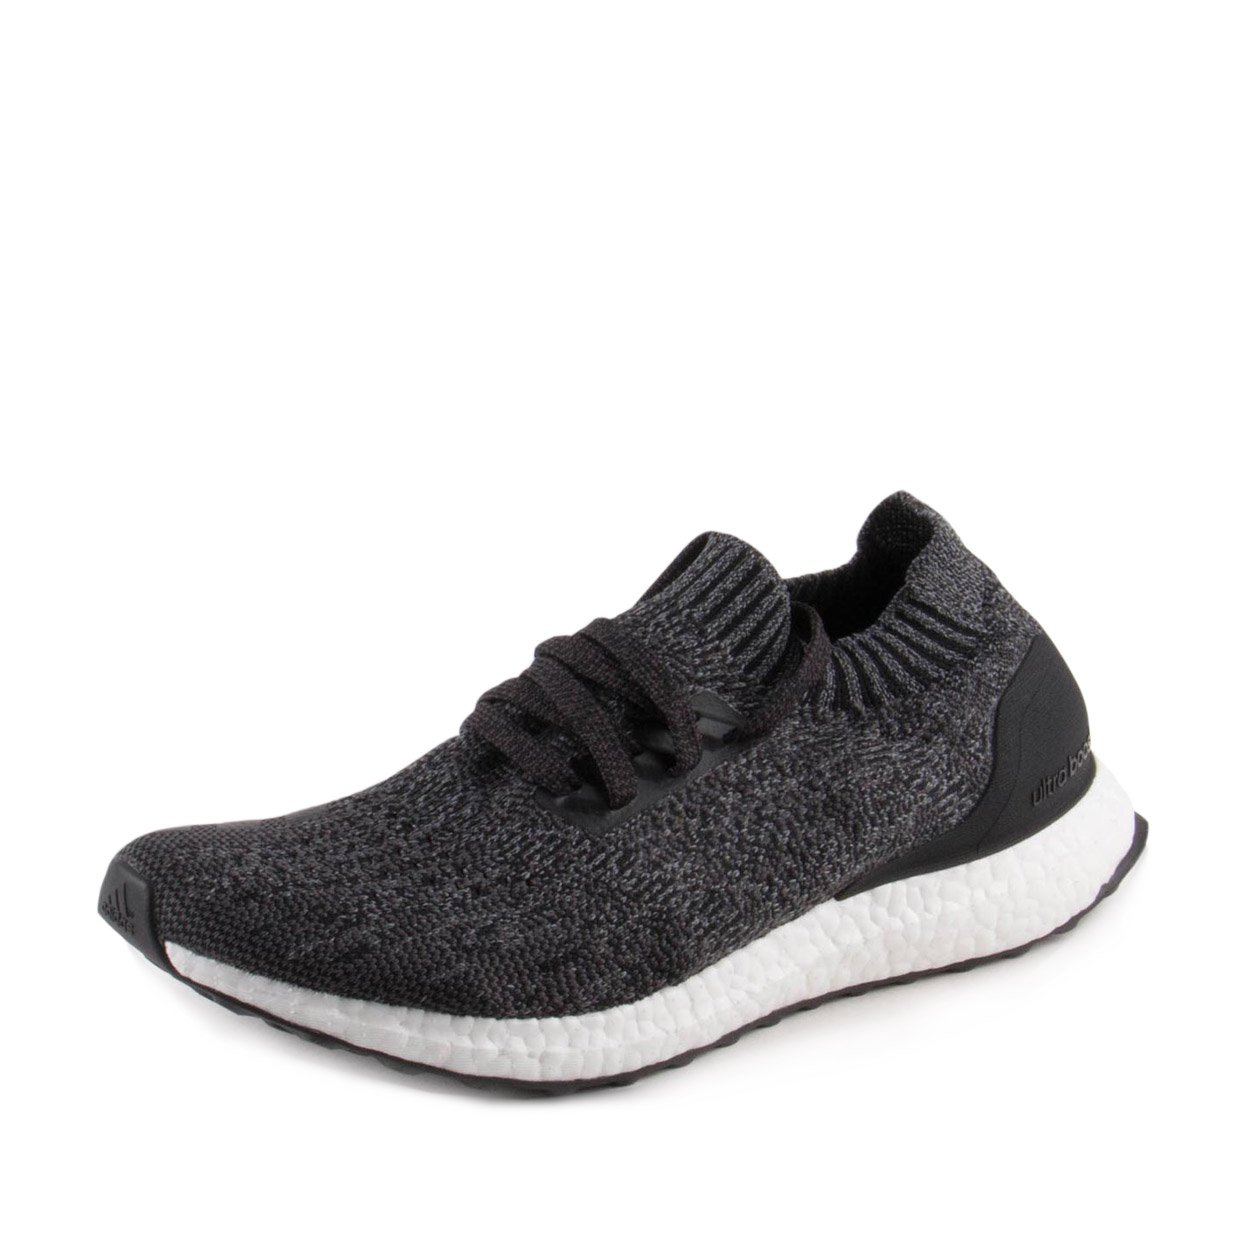 66d1300f19501 Galleon - Adidas Ultra Boost Uncaged Mens Running Sneakers Core Black Solid  Grey By2551 (12 D(M) US)